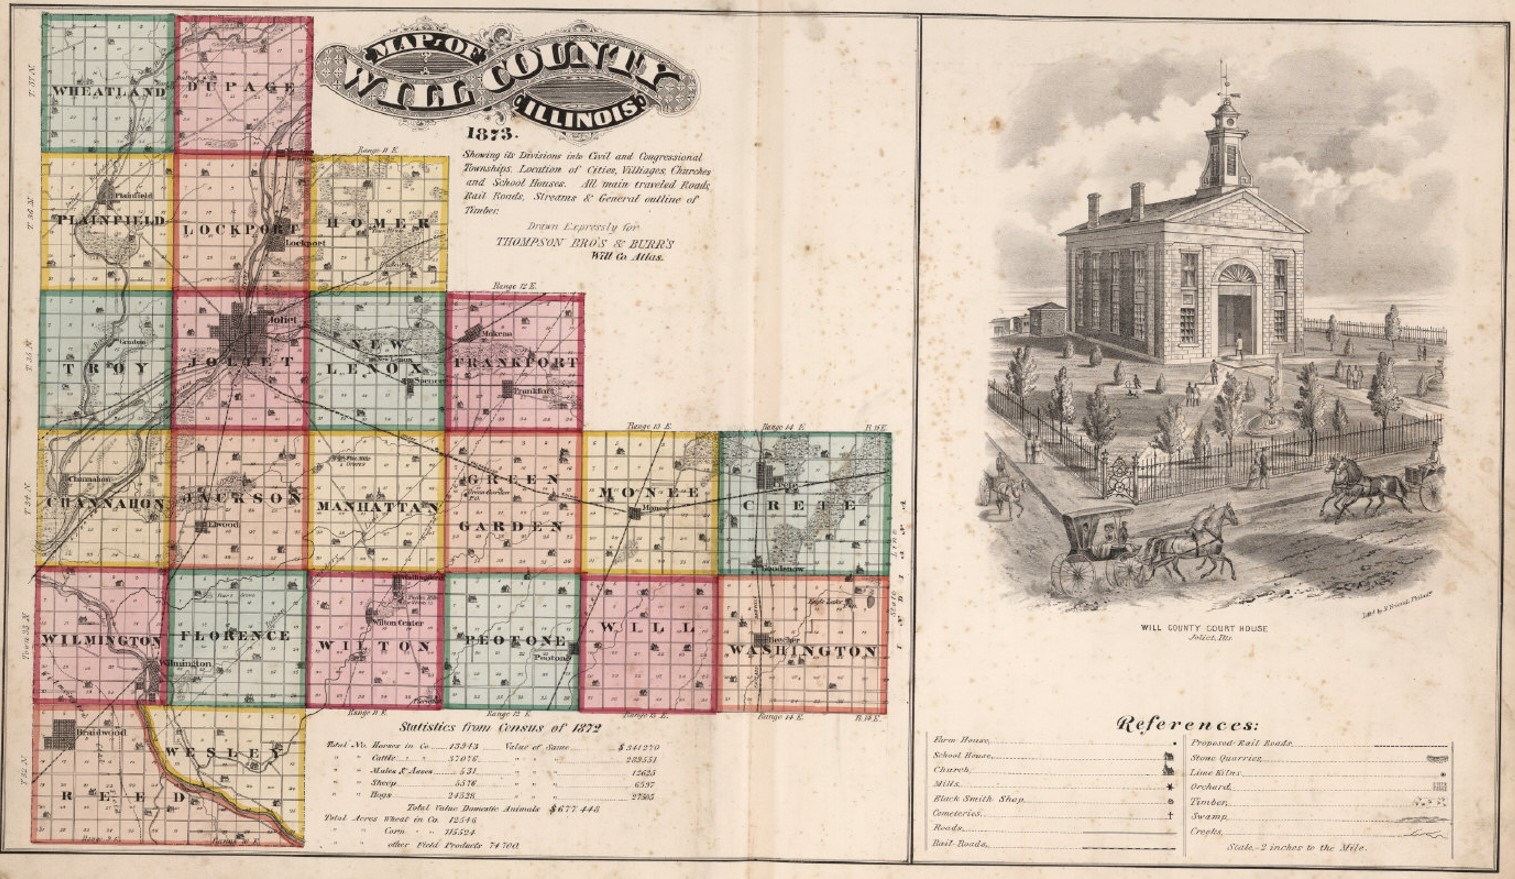 Courthouse and Maps